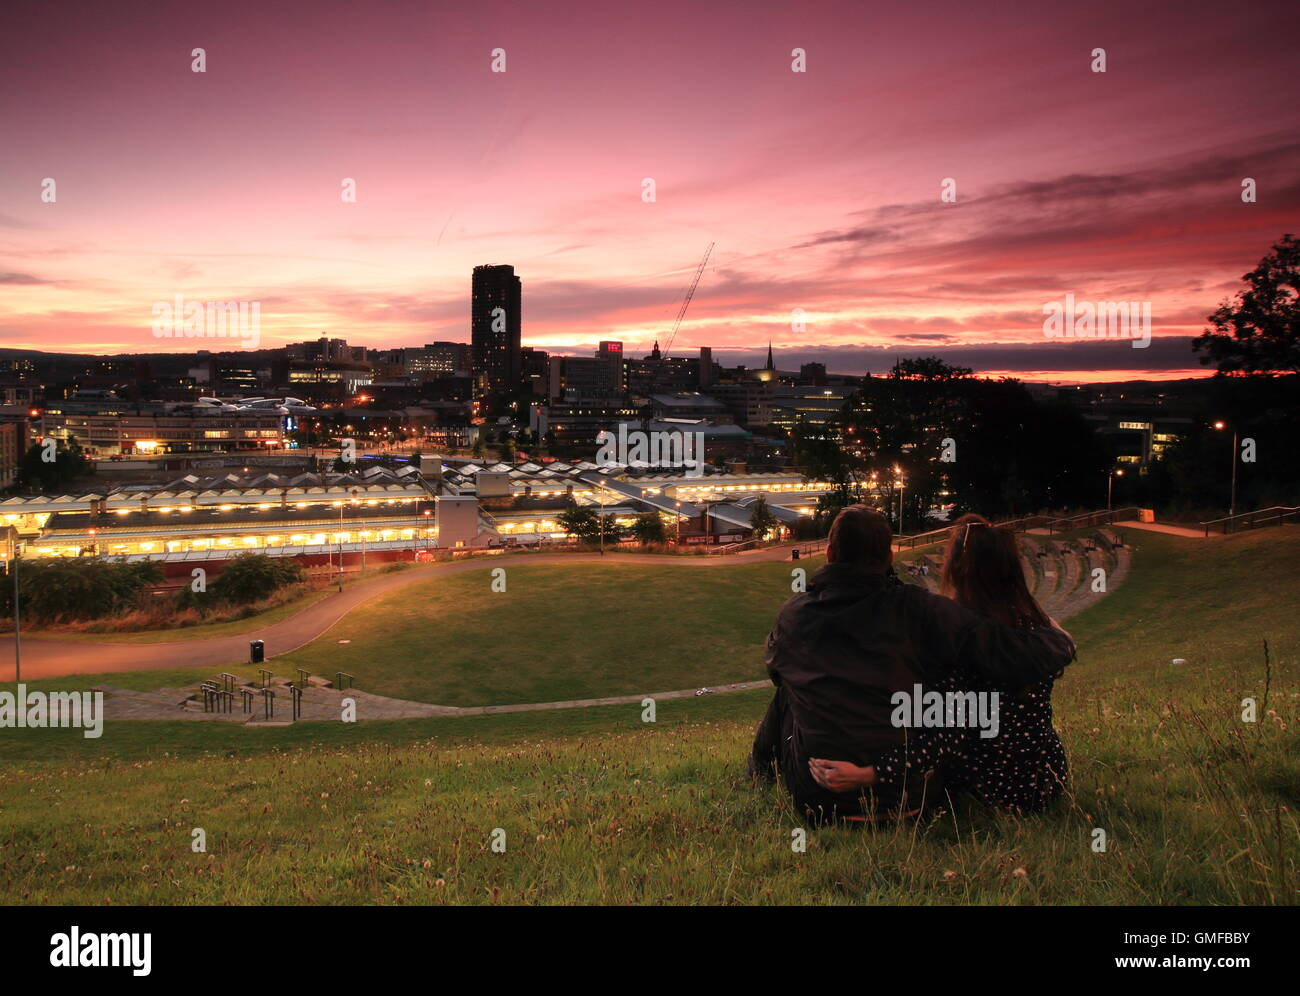 Sheffield, Yorkshire, UK. 26th Aug, 2016. A couple watch a stunning strawberry sunset from a hillside overlooking - Stock Image